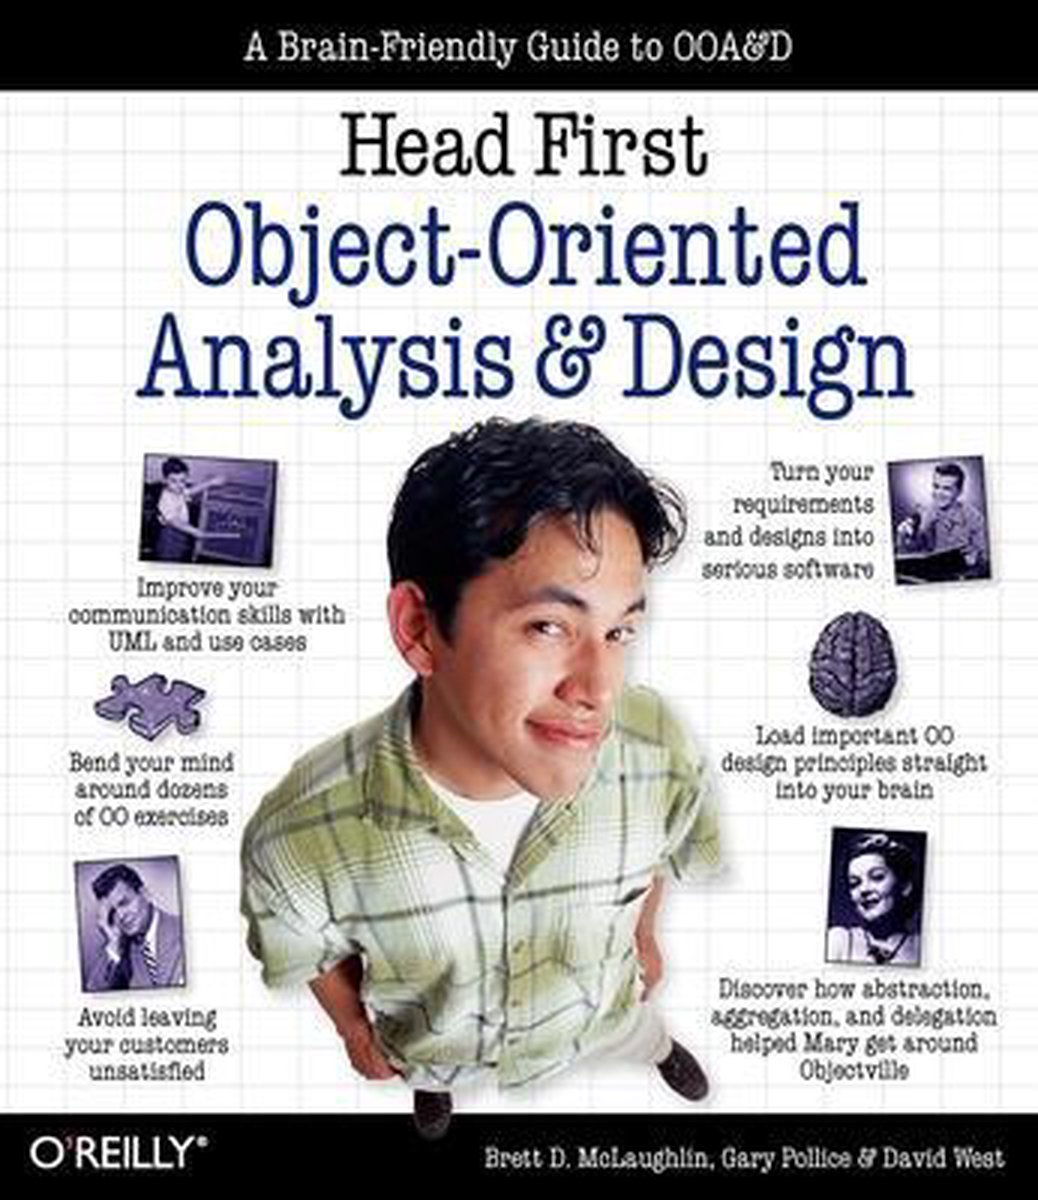 Head First Objects-Oriented Analysis and Design - Brett Mclaughlin